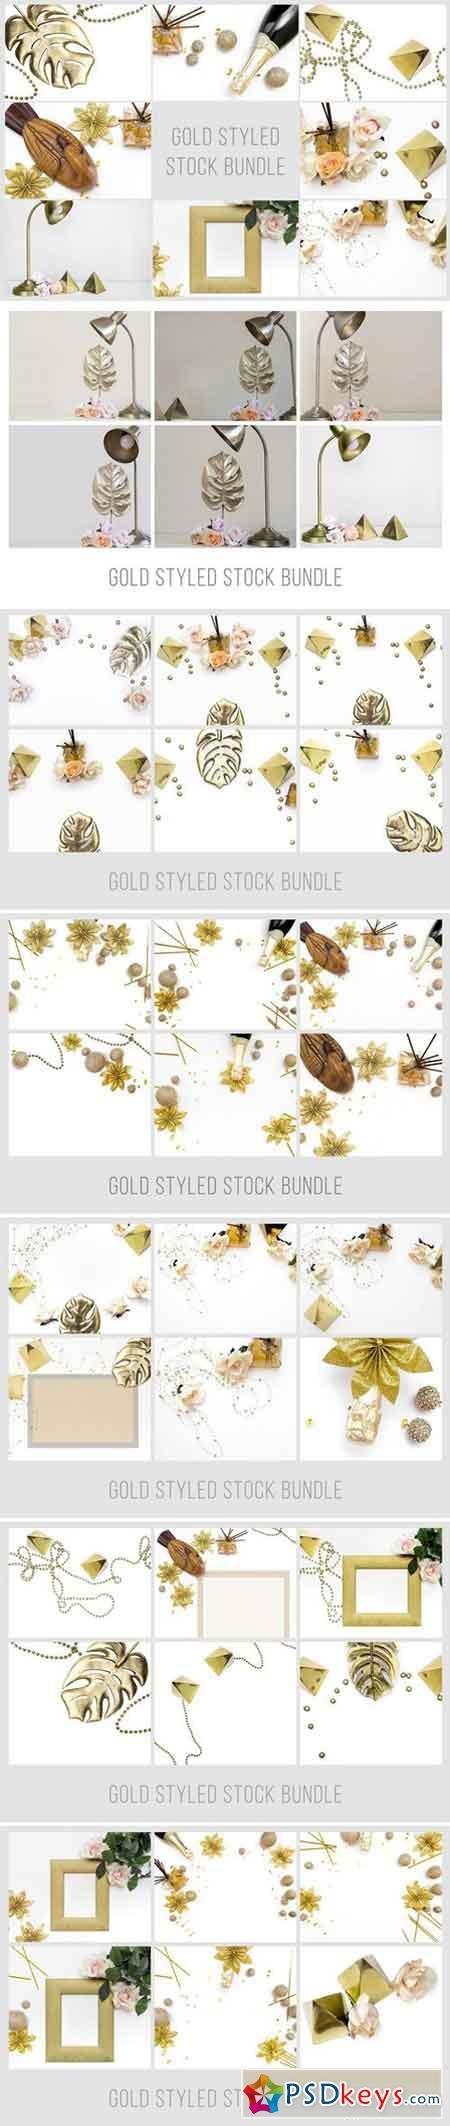 Gold Styled Stock Bundle 2228406